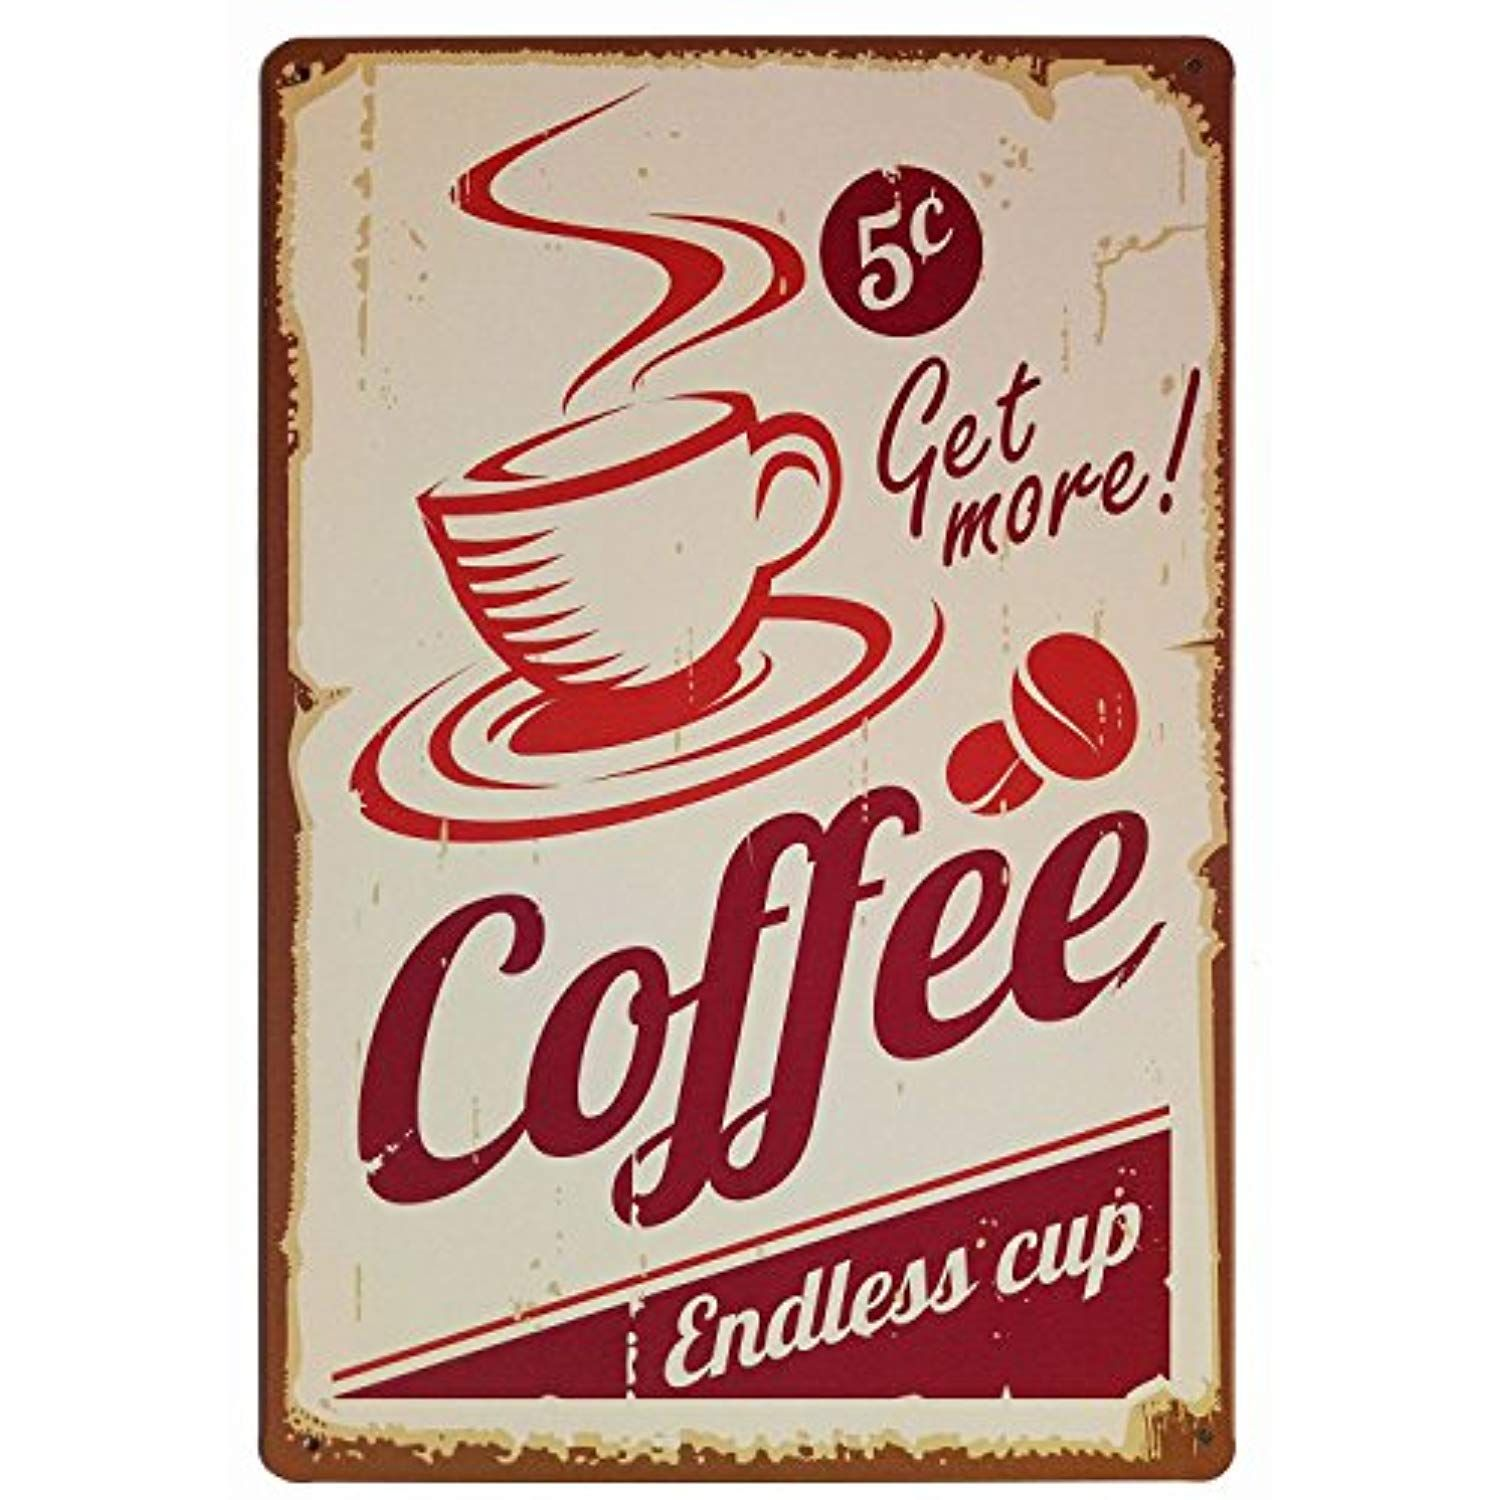 Erlood Get More Coffee Cup Retro Vintage Tin Sign 12 X 8 Want To Know More Click On The Image Coffee Wall Decor Wall Decor Stickers Vintage Tin Signs